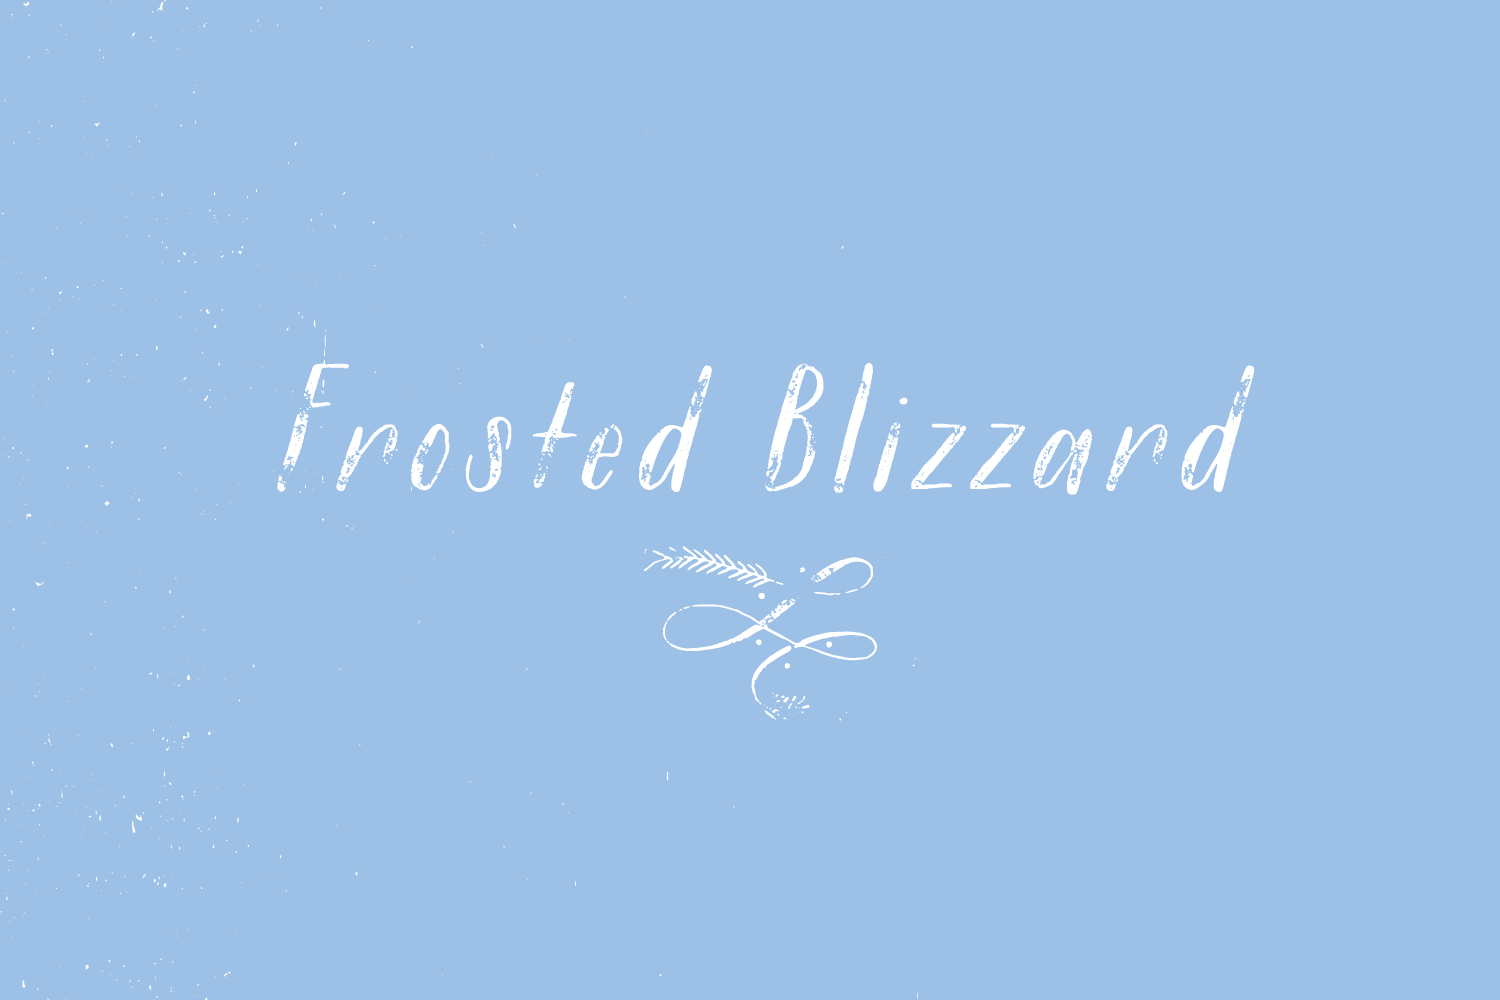 Winter Mix Blizzard example image 2